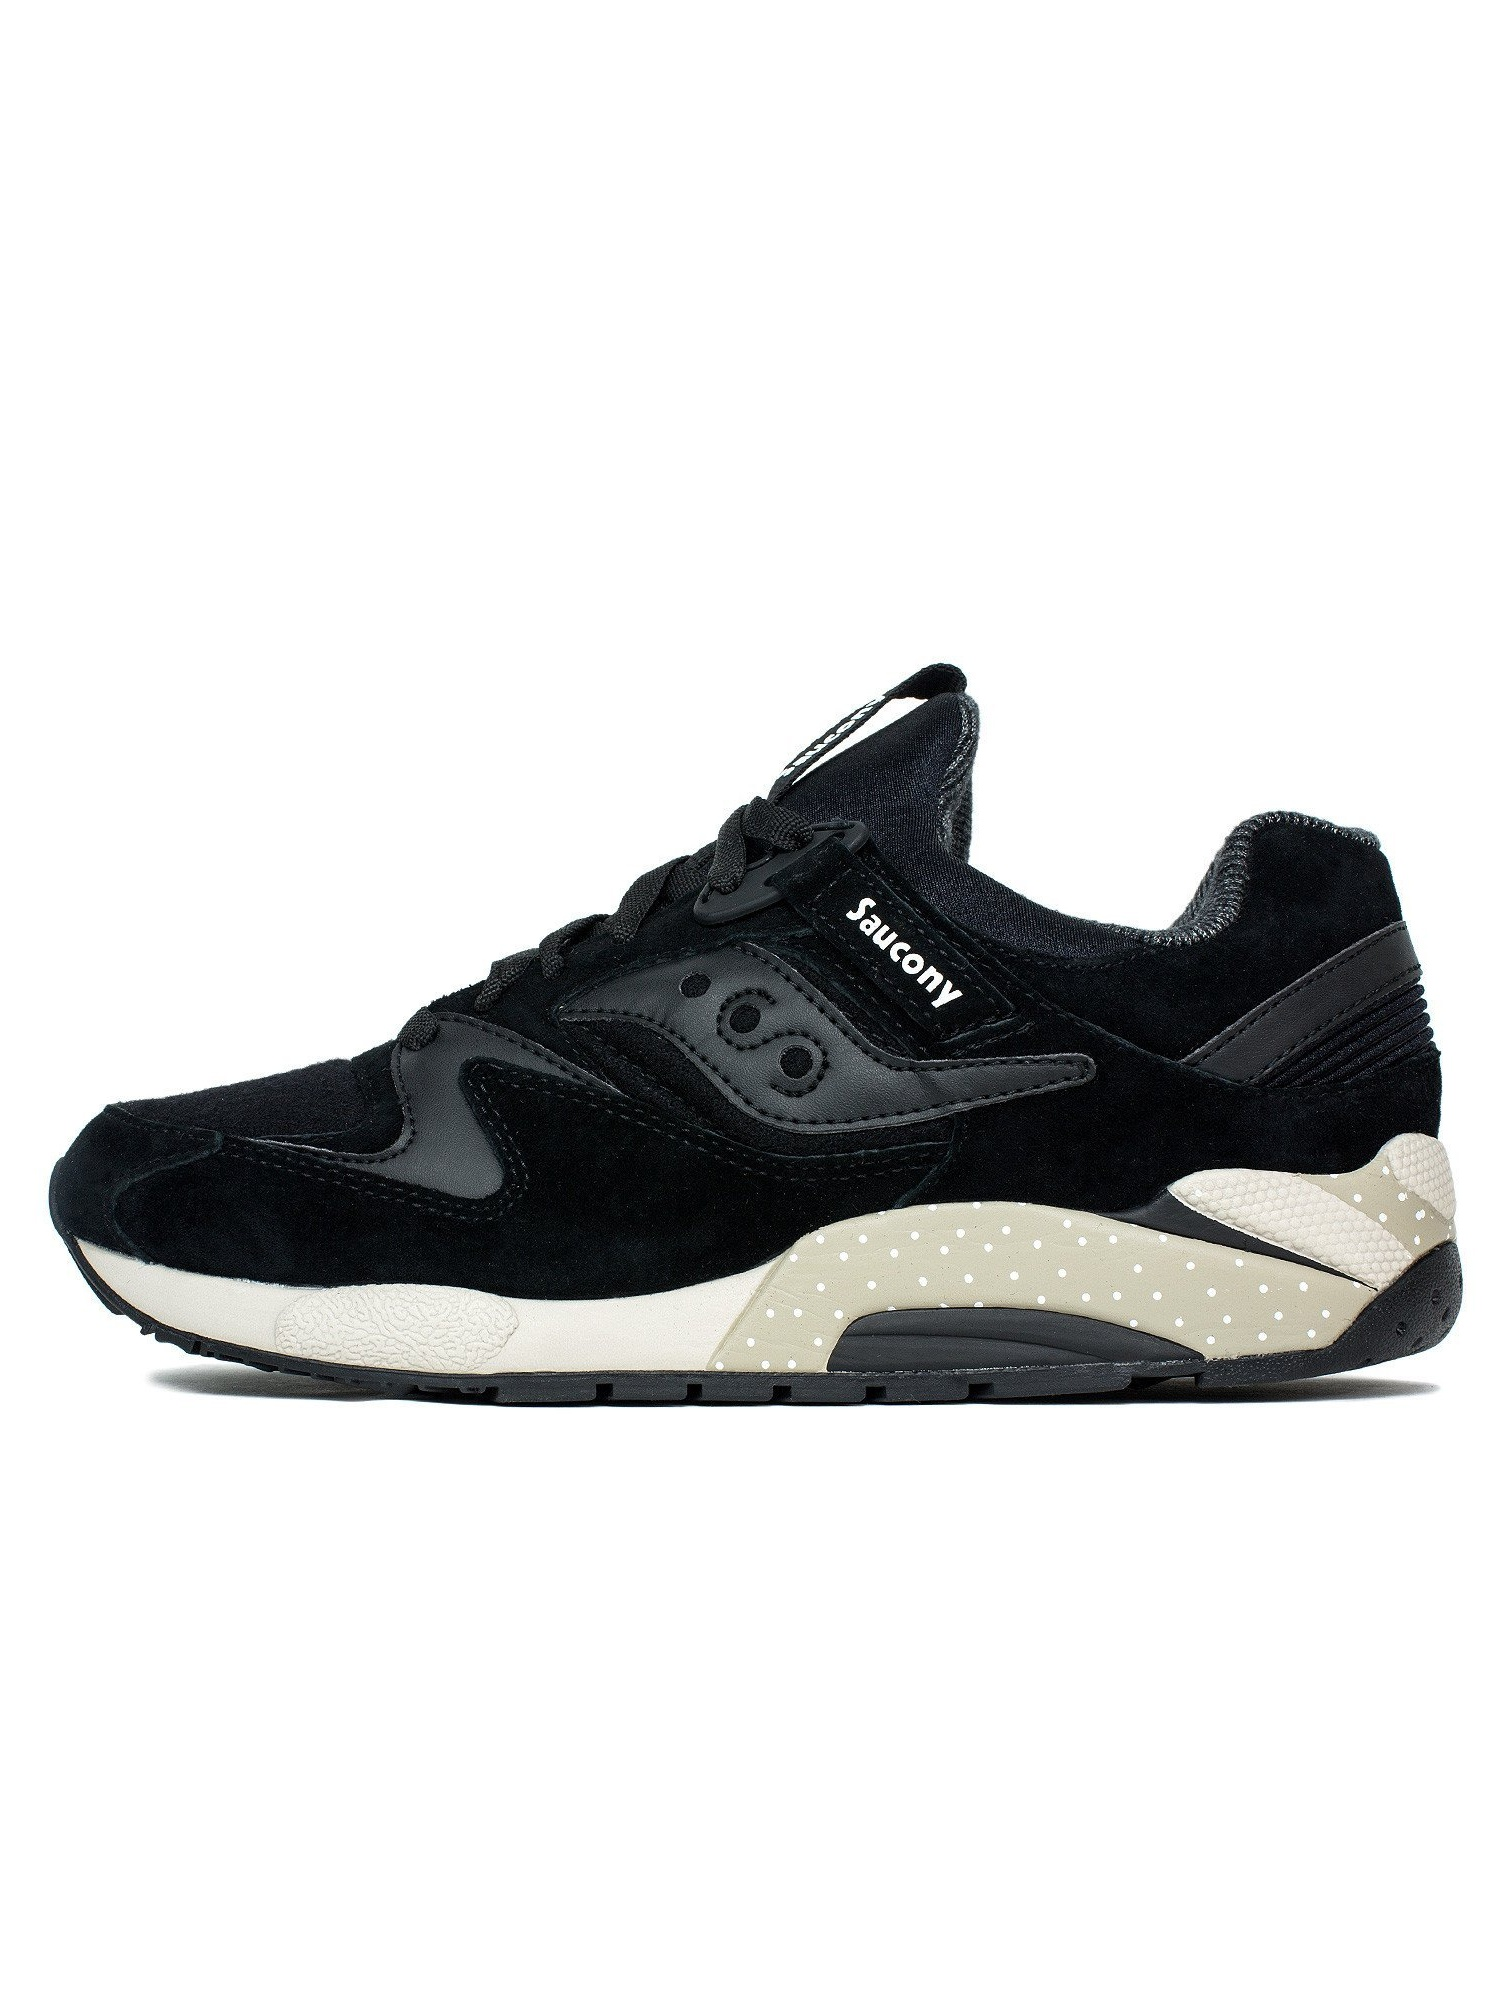 Mens Saucony x Billy's Grid 9000 Nippon Black White S70269-2 by